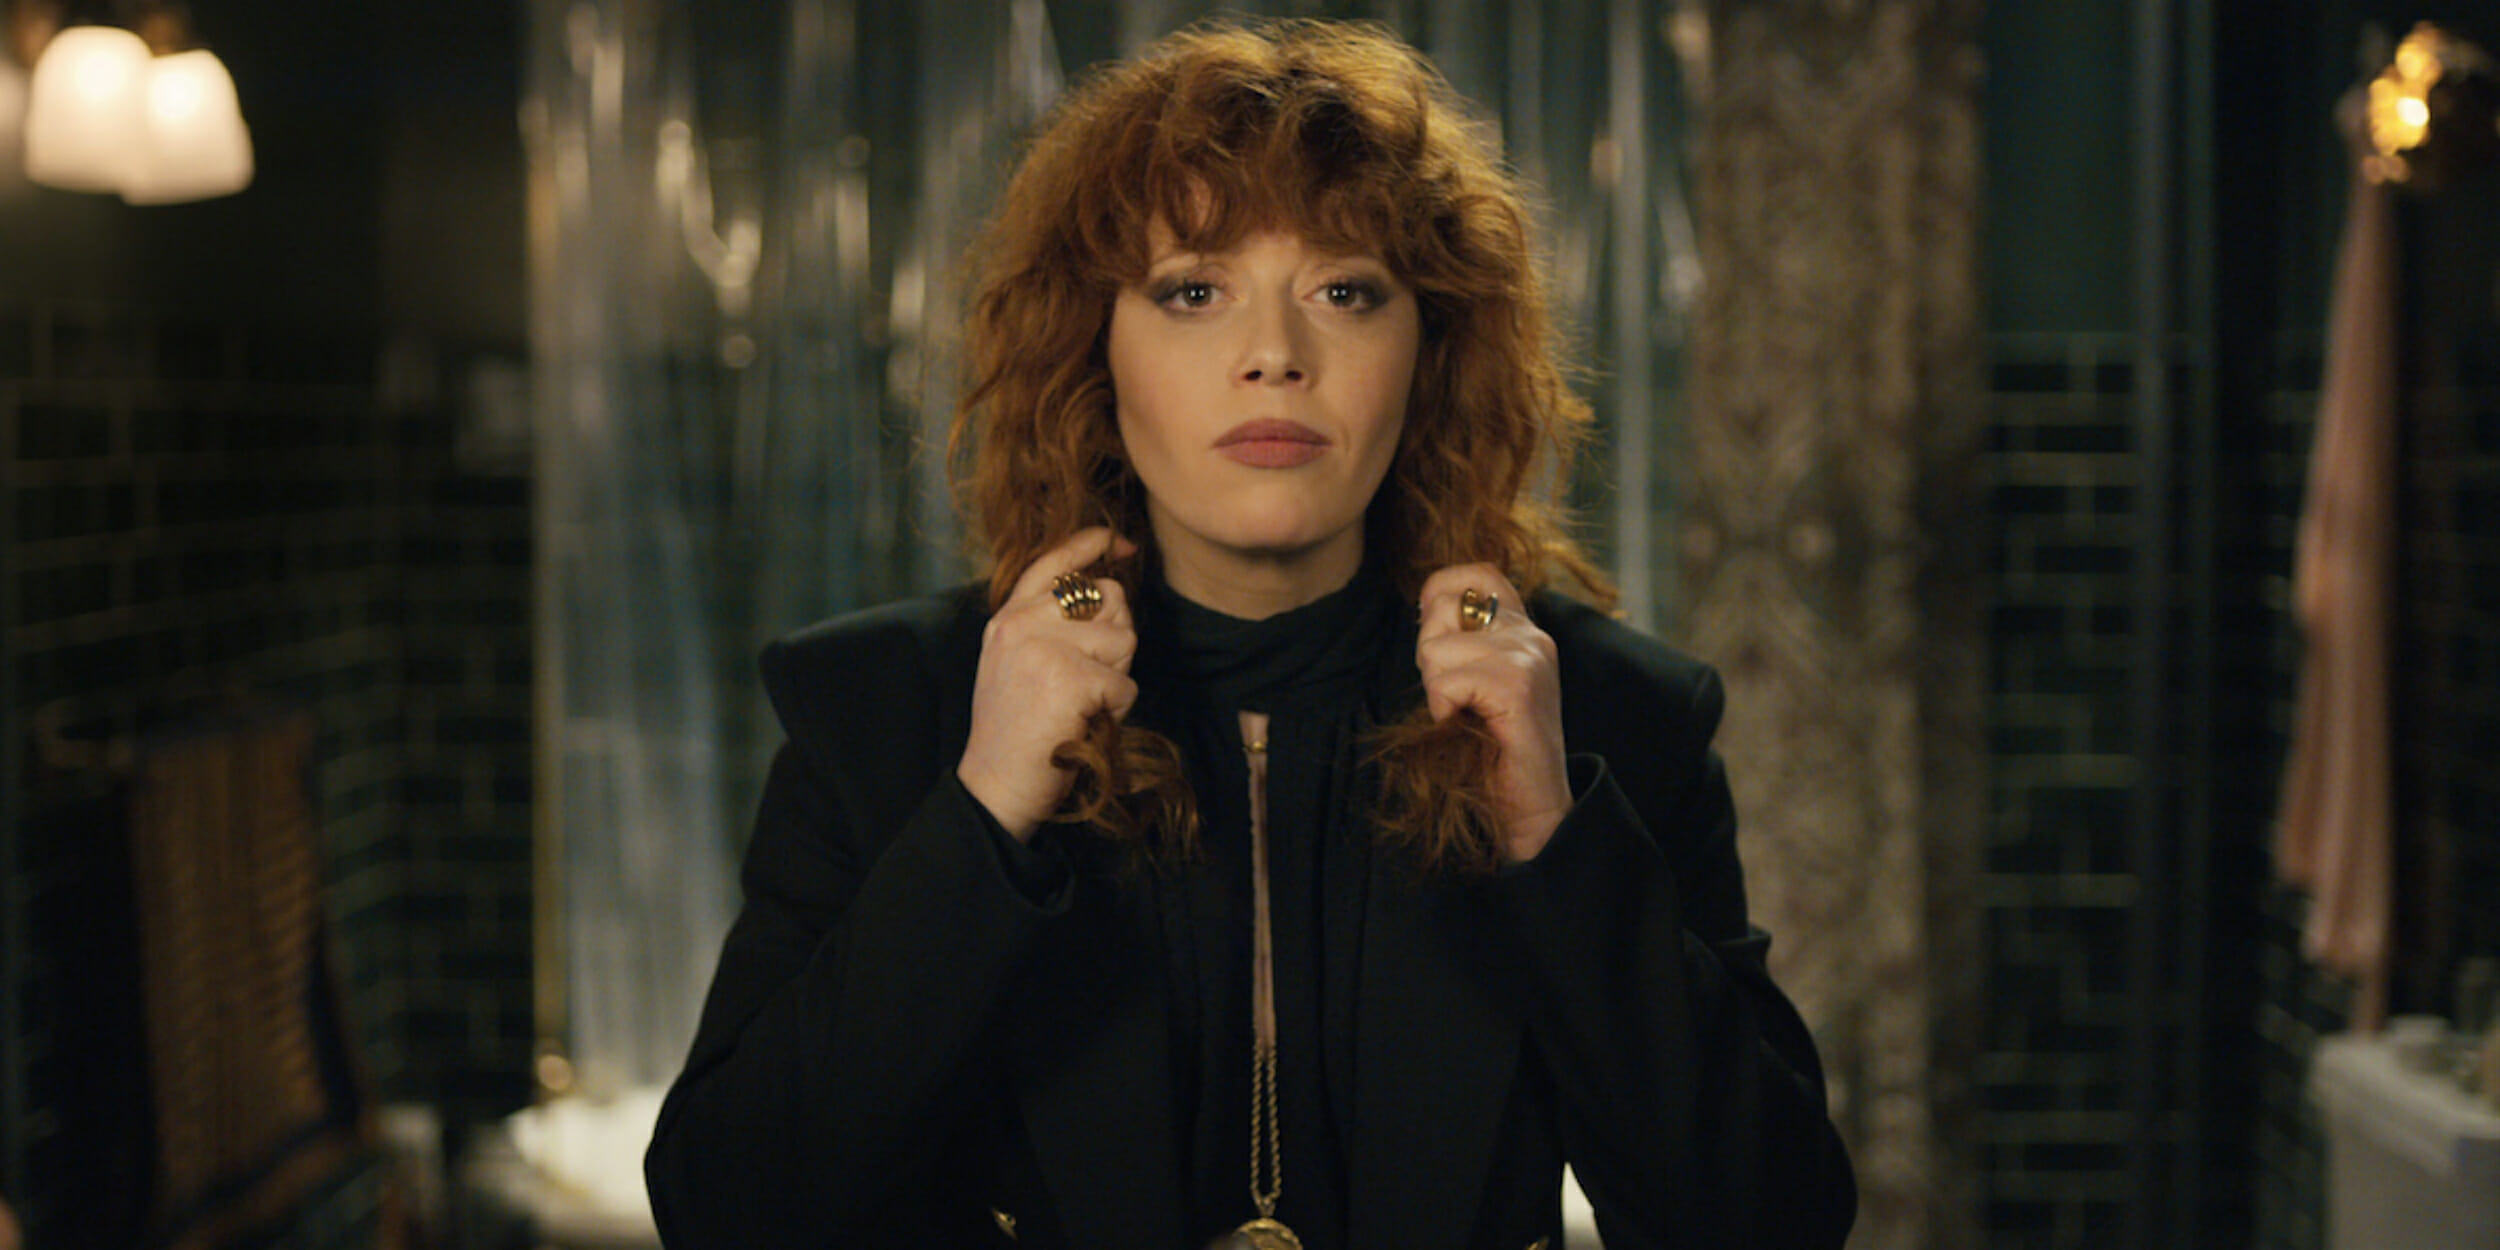 Netflix original series 2019: Russian Doll